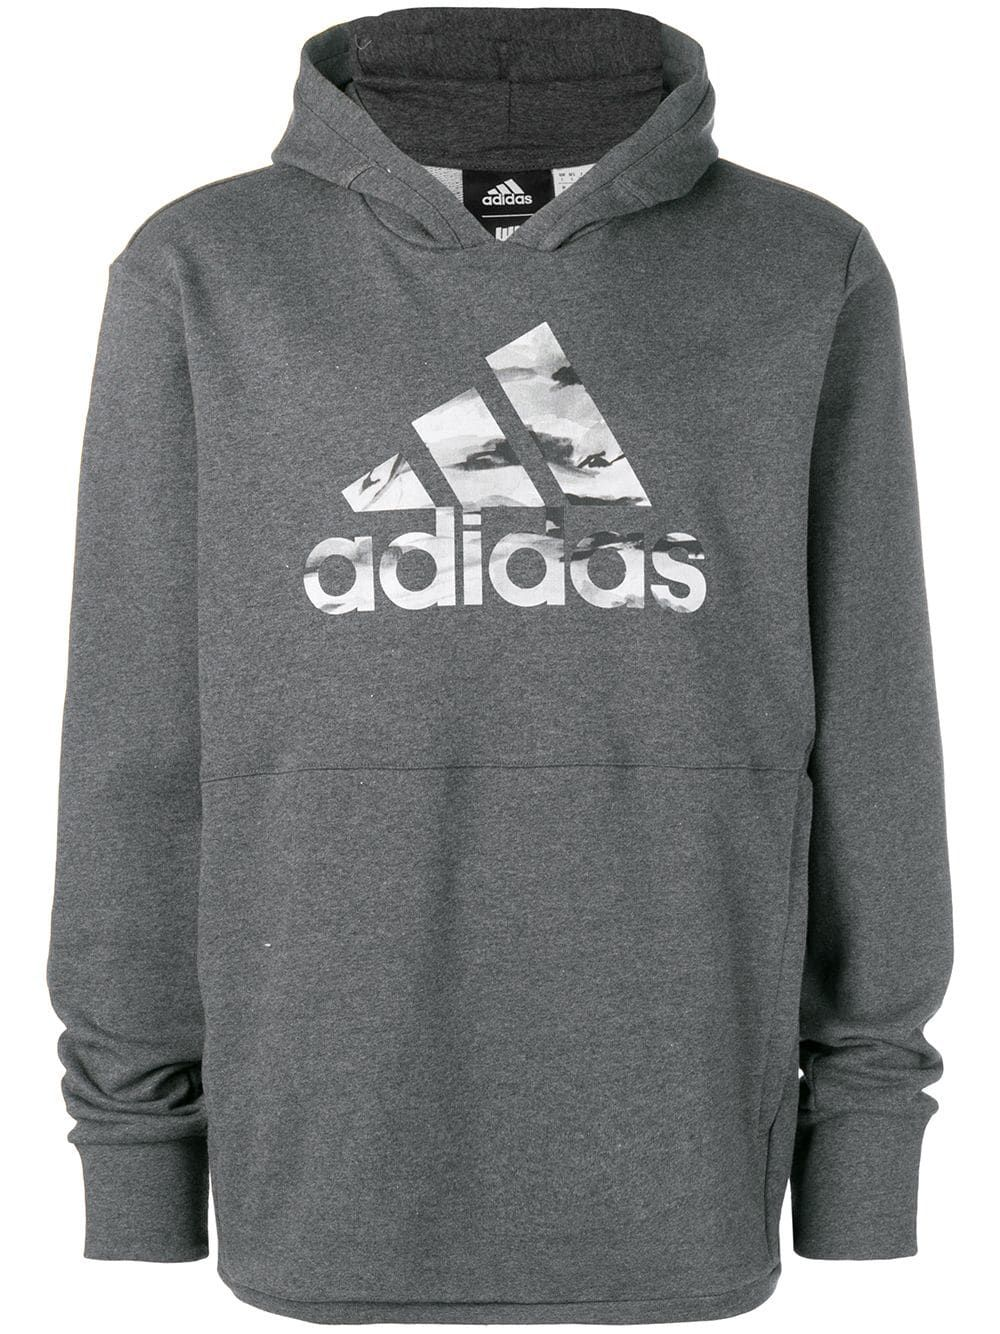 c8c139514643 ADIDAS ORIGINALS ADIDAS ADIDAS X UNDEFEATED TECH HOODIE - GREY.   adidasoriginals  cloth